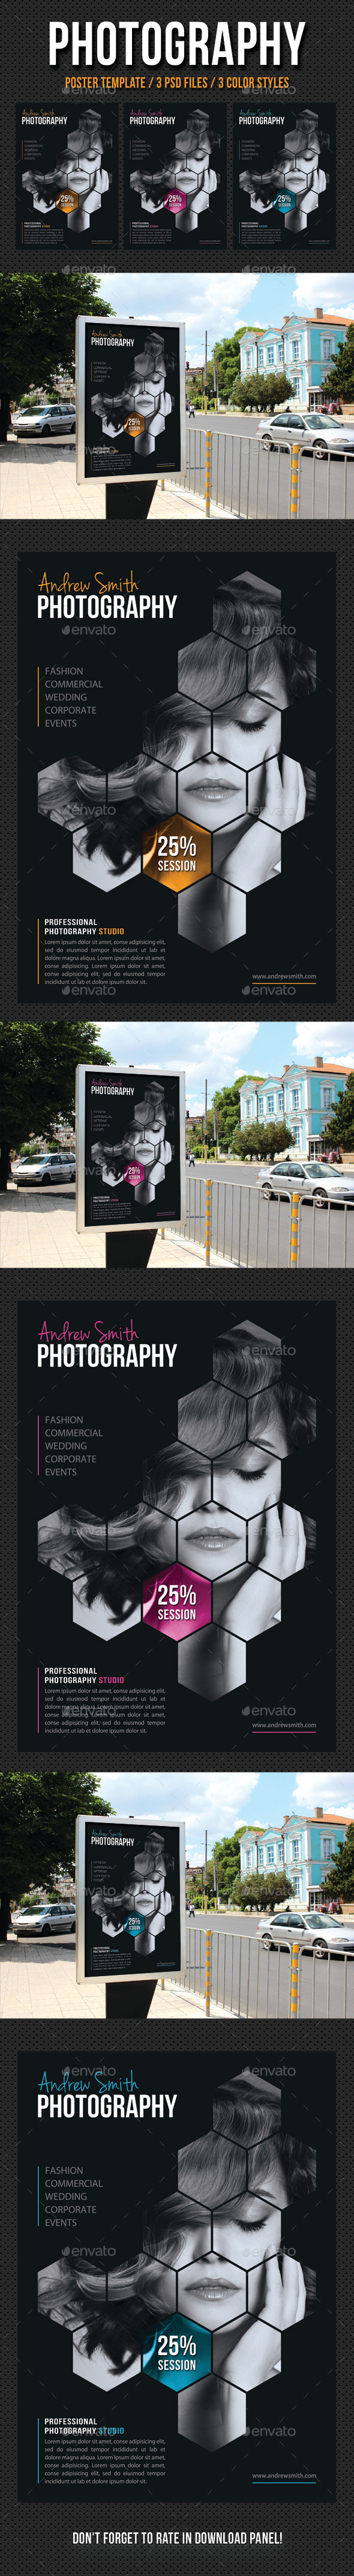 Photography Poster Template V04 - Signage Print Templates